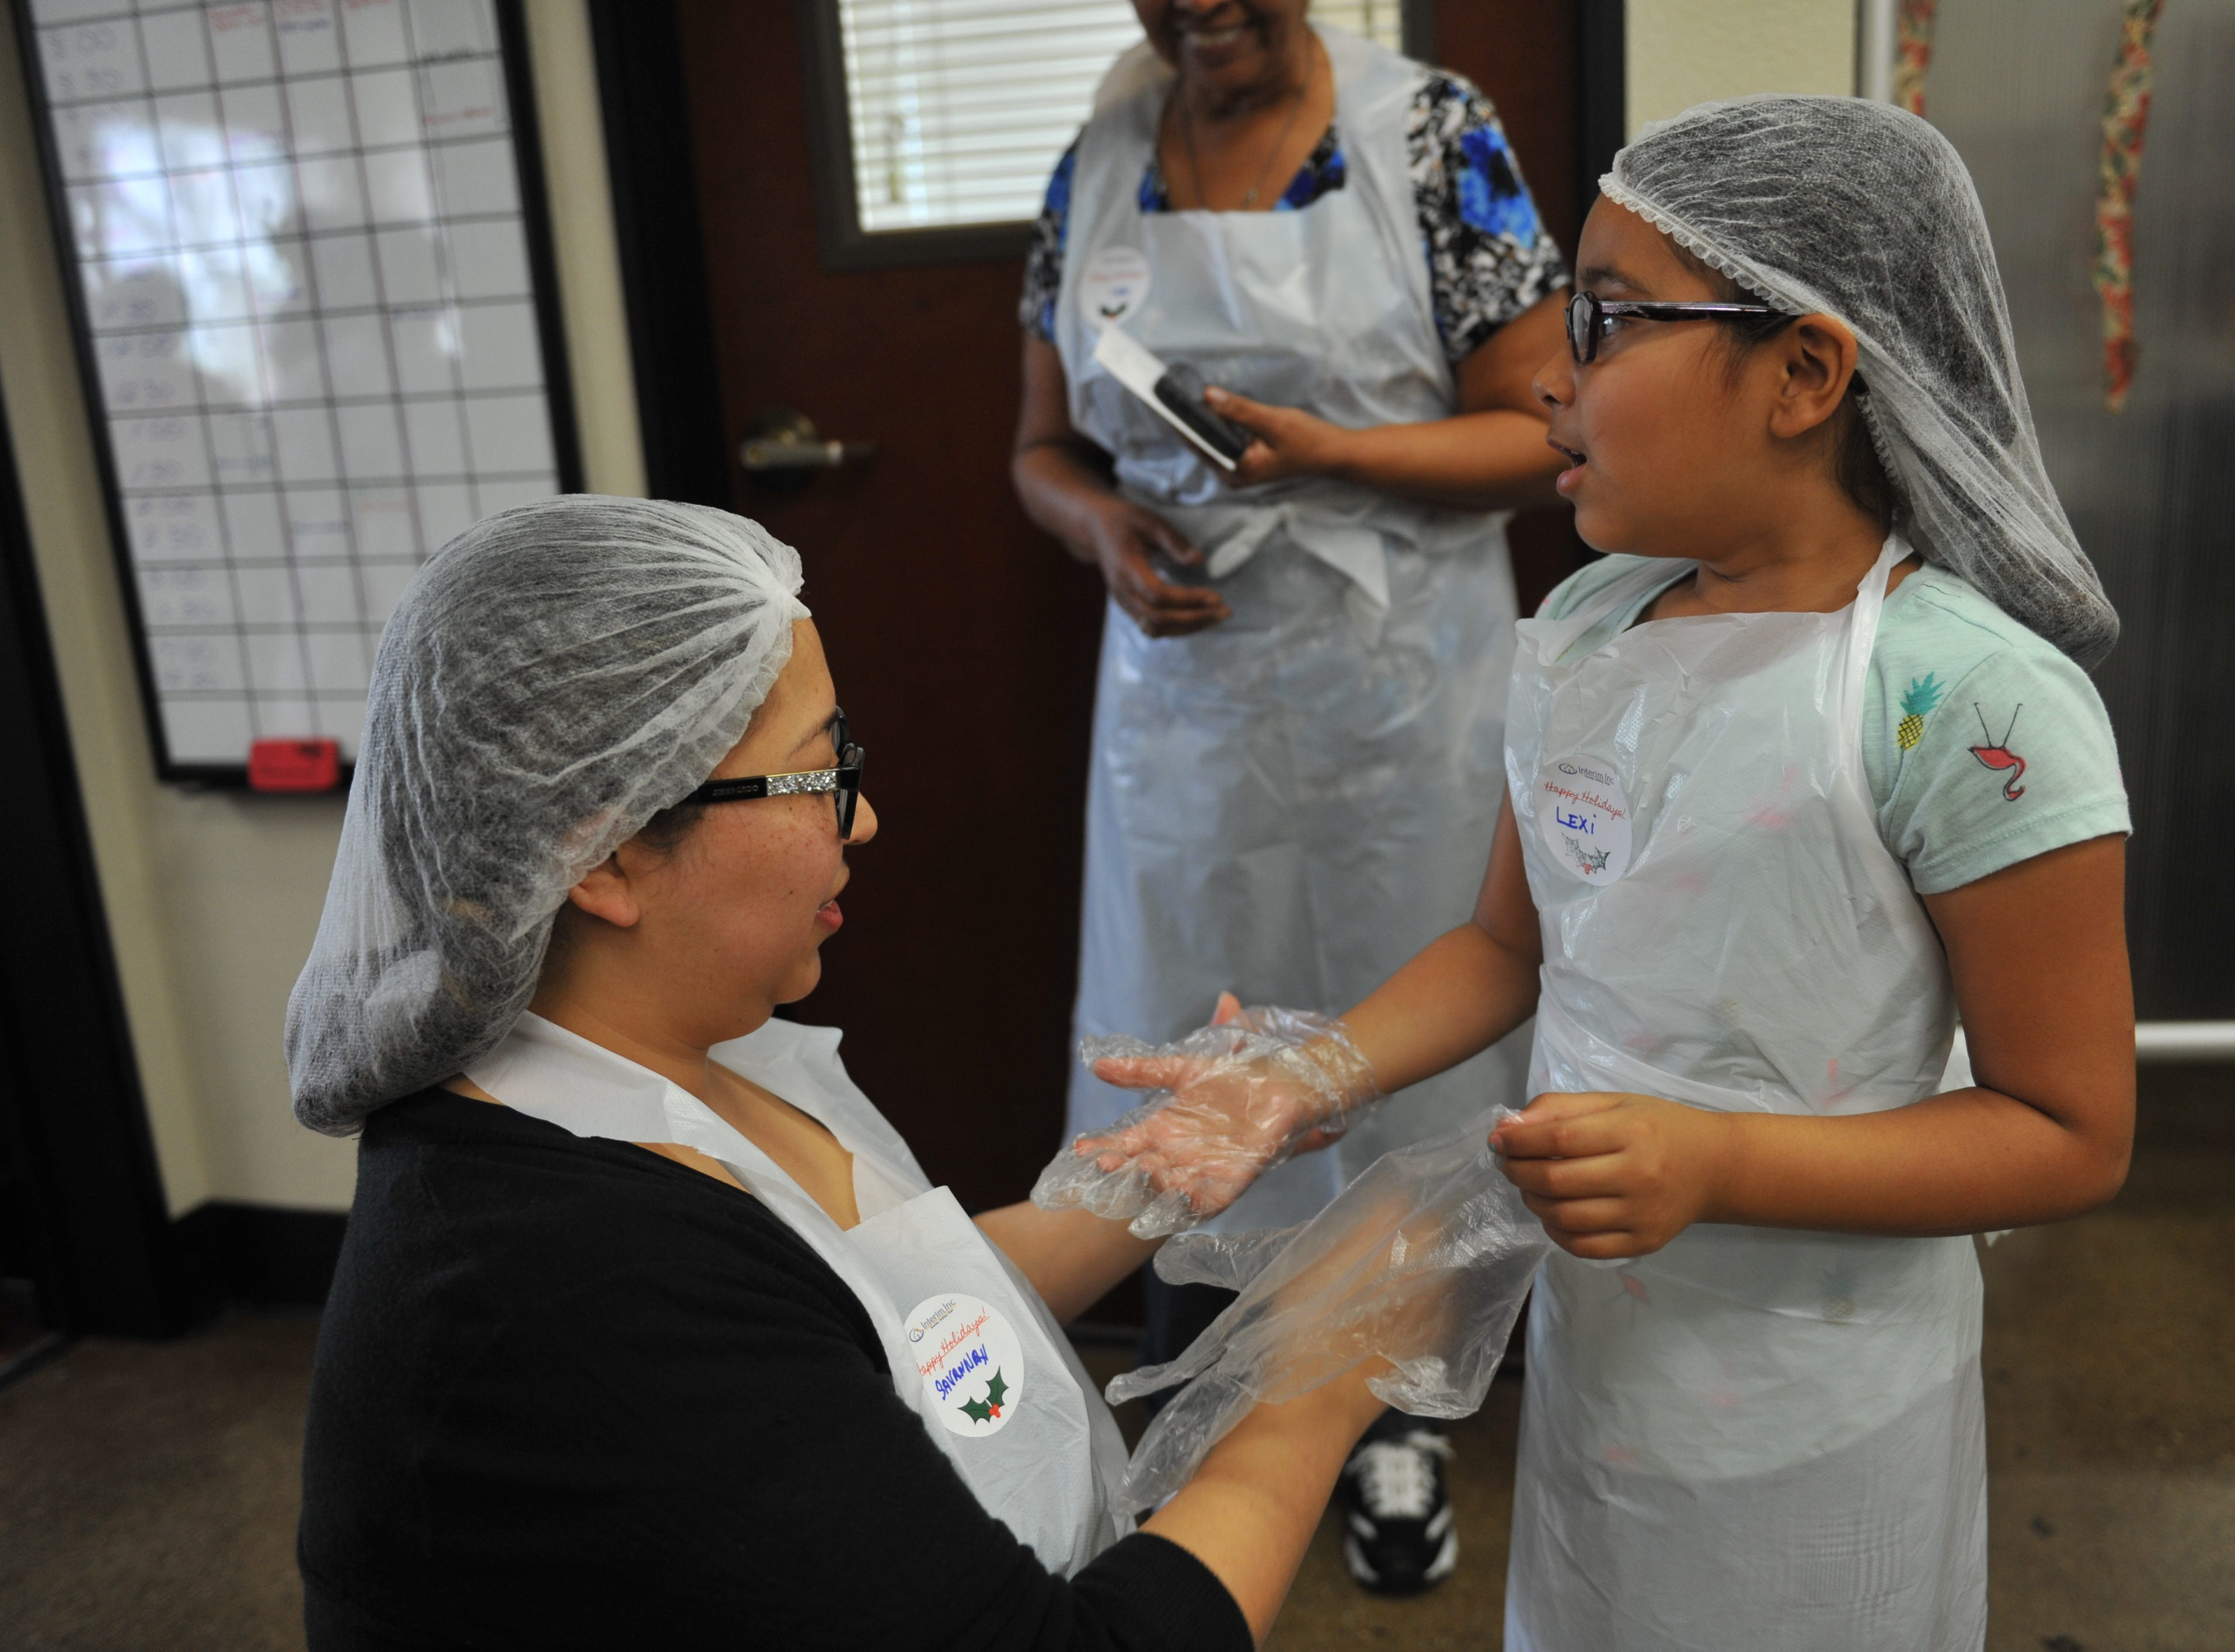 With Savannah Alvarez putting on her gloves, a young volunteer gets ready to serve more holiday meals at the OMNI Resource Center.